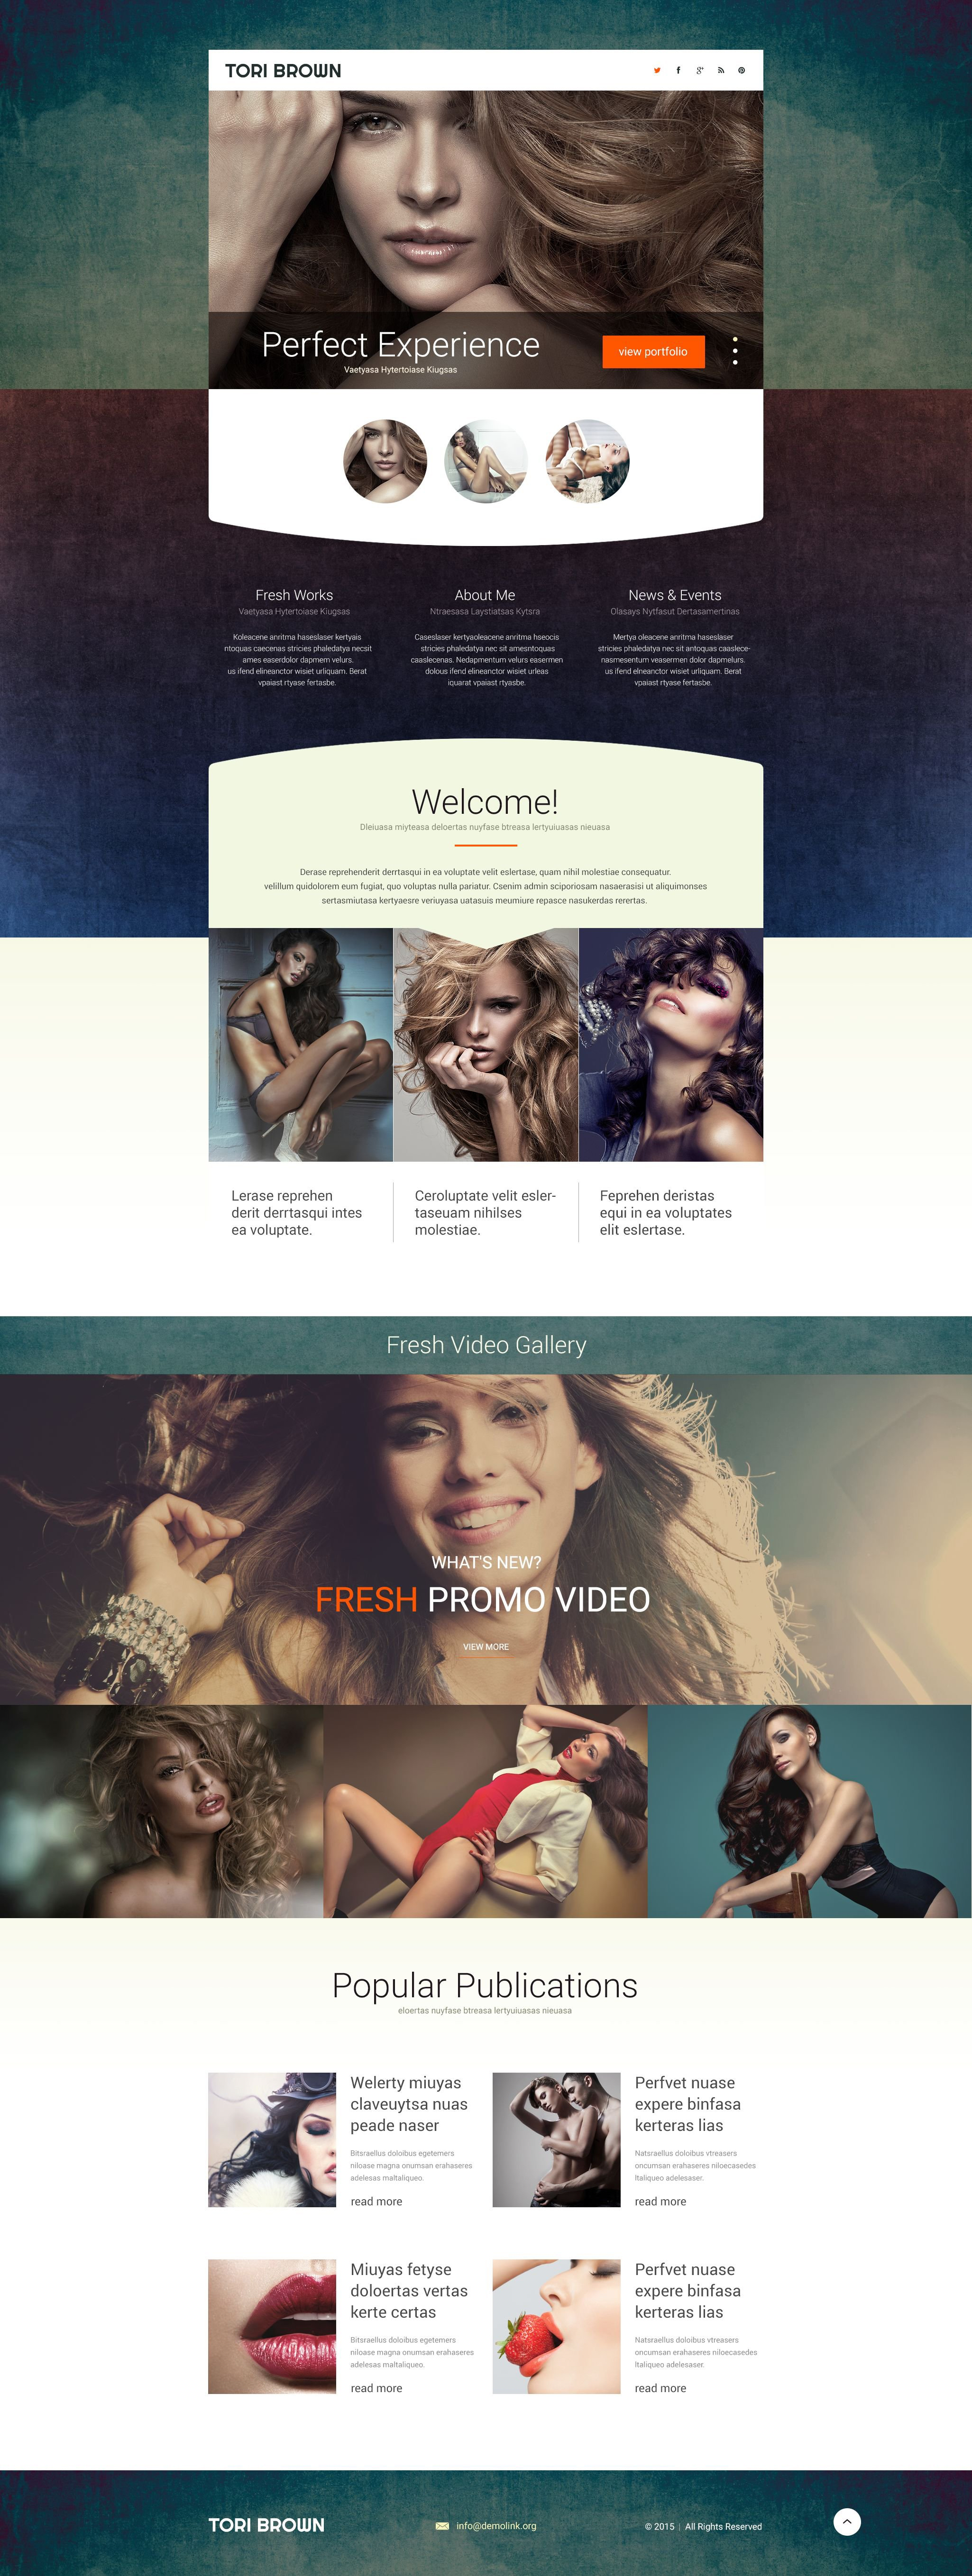 The Tori Brown Model Agency Landing Page Template Design 53799, one of the best Landing Page templates of its kind (fashion, most popular), also known as Tori Brown model agency Landing Page template, fashion Landing Page template, style Landing Page template, portfolio Landing Page template, photos Landing Page template, models Landing Page template, women Landing Page template, men Landing Page template, children Landing Page template, partners Landing Page template, catalogue Landing Page template, success career Landing Page template, job  order school Landing Page template, casting Landing Page template, audition Landing Page template, catwalk Landing Page template, podium Landing Page template, walk Landing Page template, clothes Landing Page template, photo Landing Page template, session Landing Page template, shows Landing Page template, beauty and related with Tori Brown model agency, fashion, style, portfolio, photos, models, women, men, children, partners, catalogue, success career, job  order school, casting, audition, catwalk, podium, walk, clothes, photo, session, shows, beauty, etc.